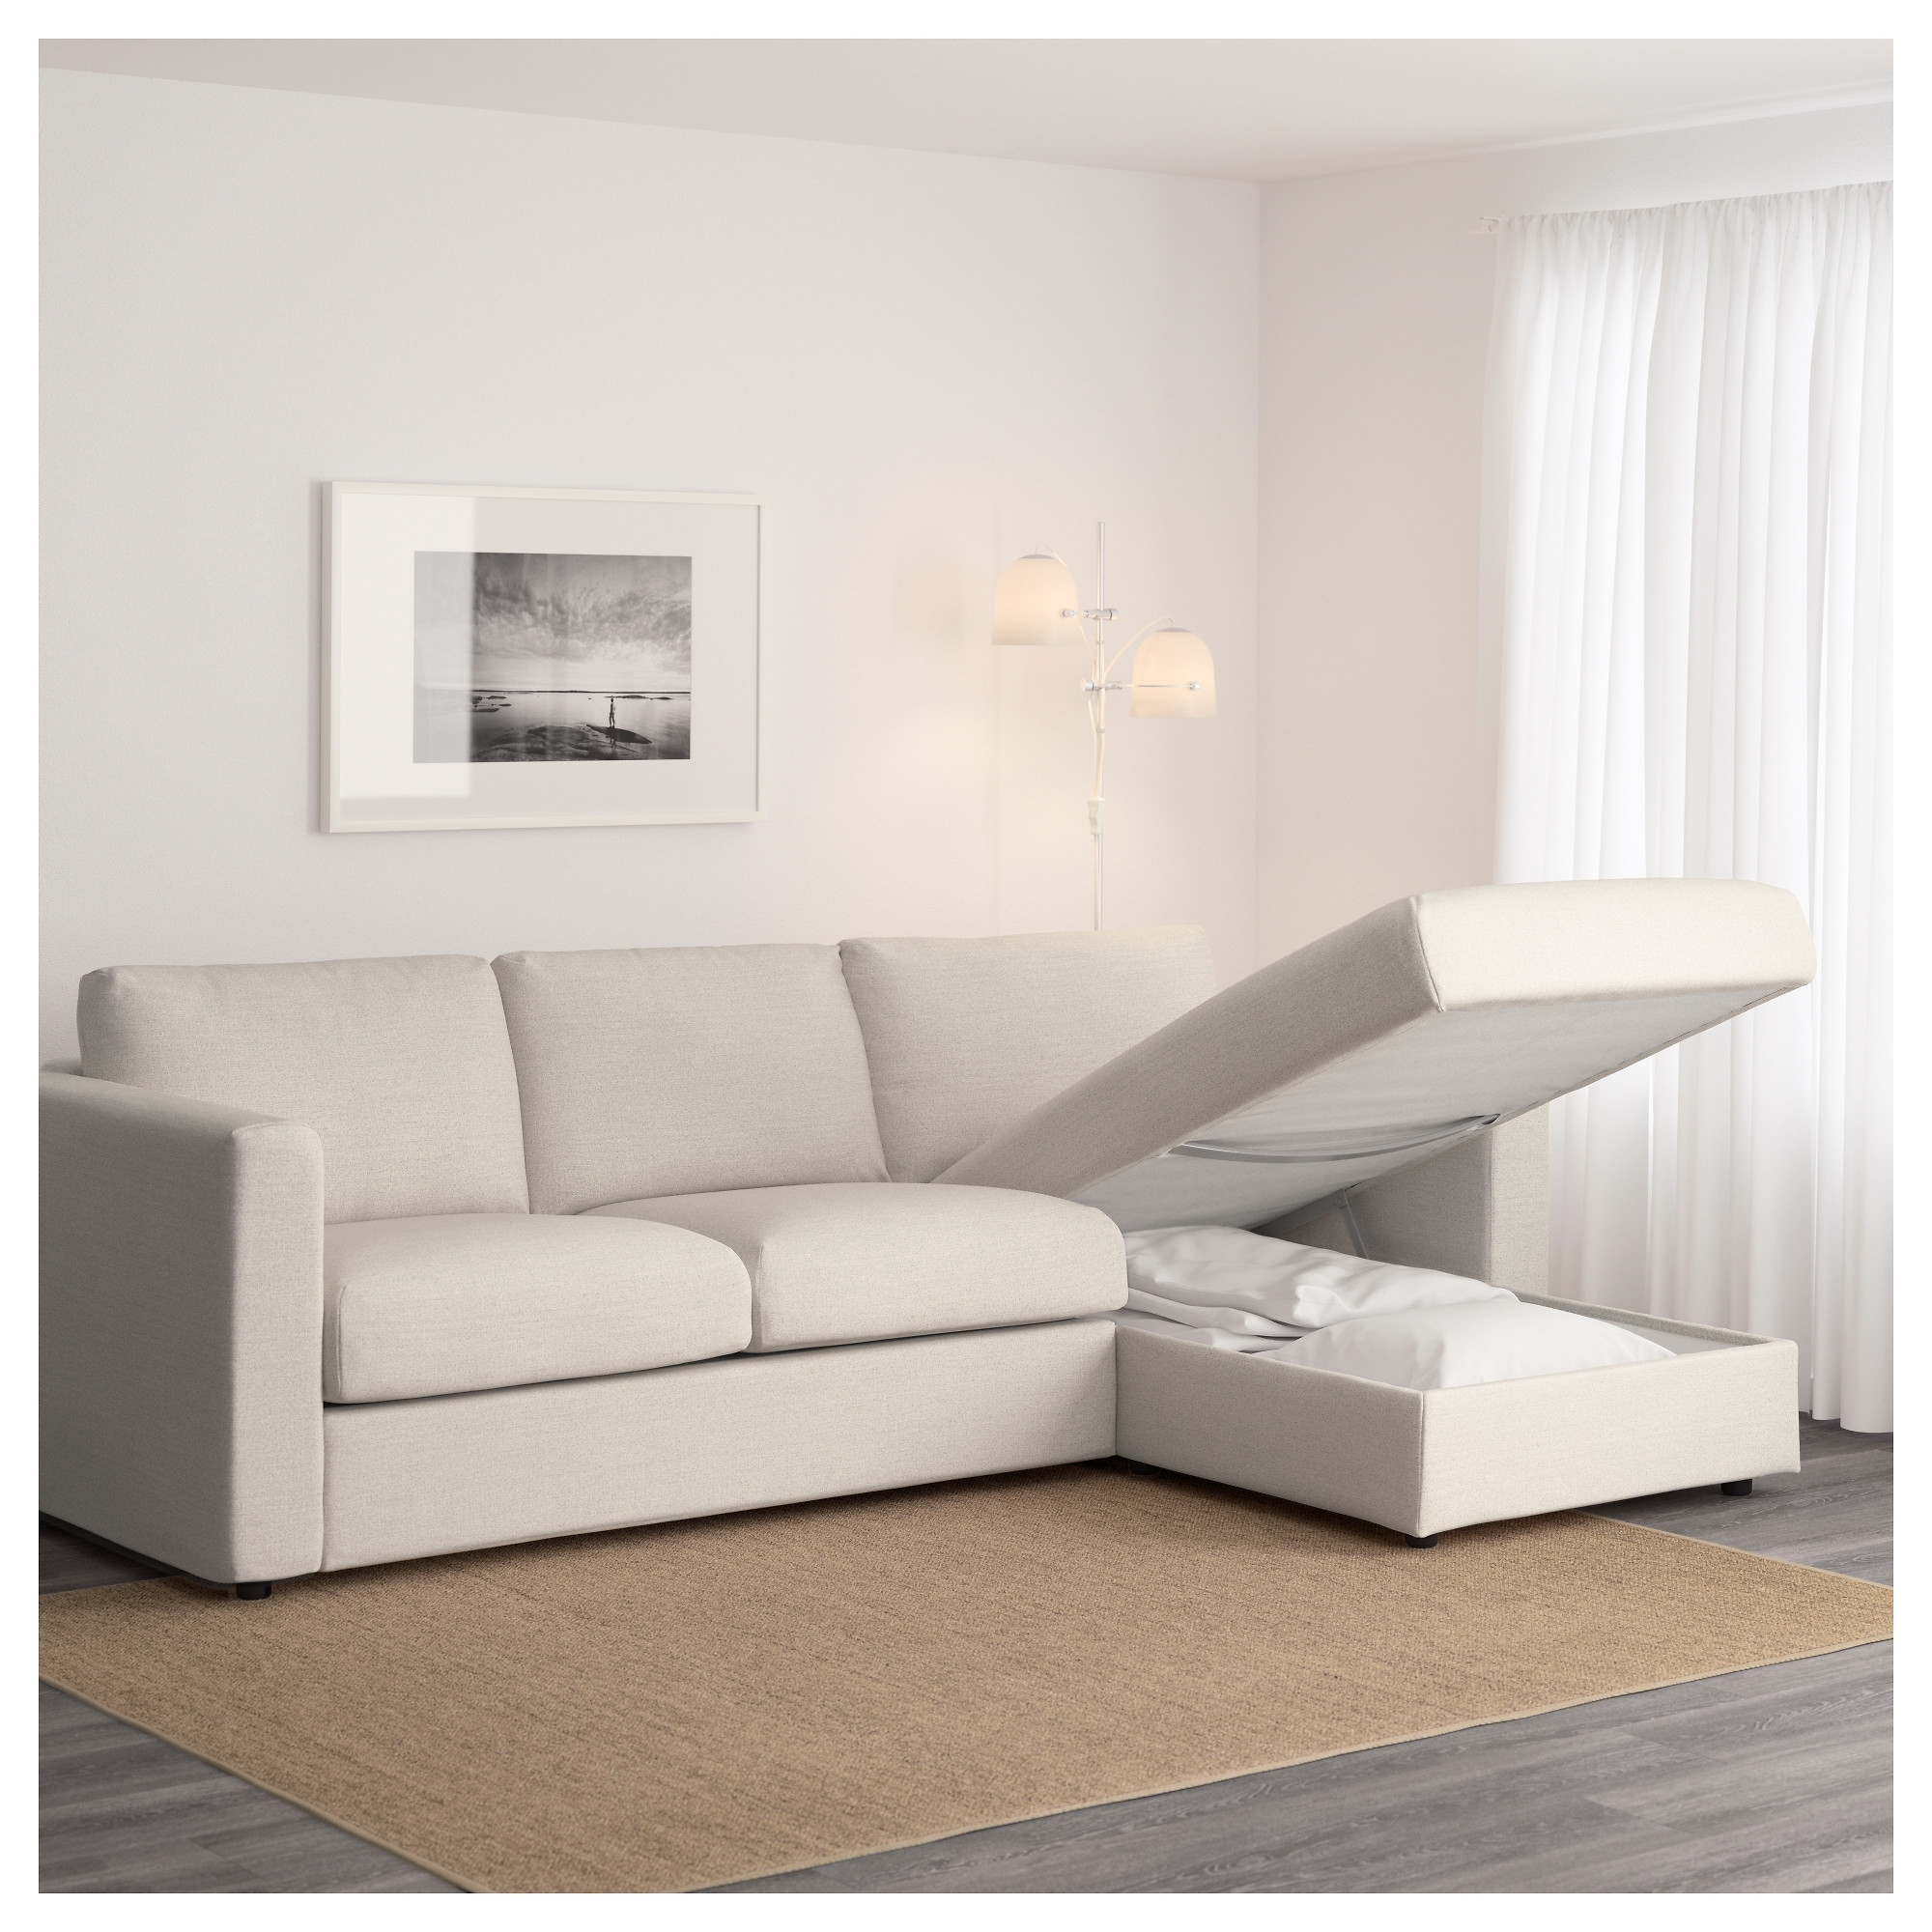 White Slipcovered Sectional Sofa White Slipcovered Sofa Reviews For Fashionable Sofas With Washable Covers (View 20 of 20)